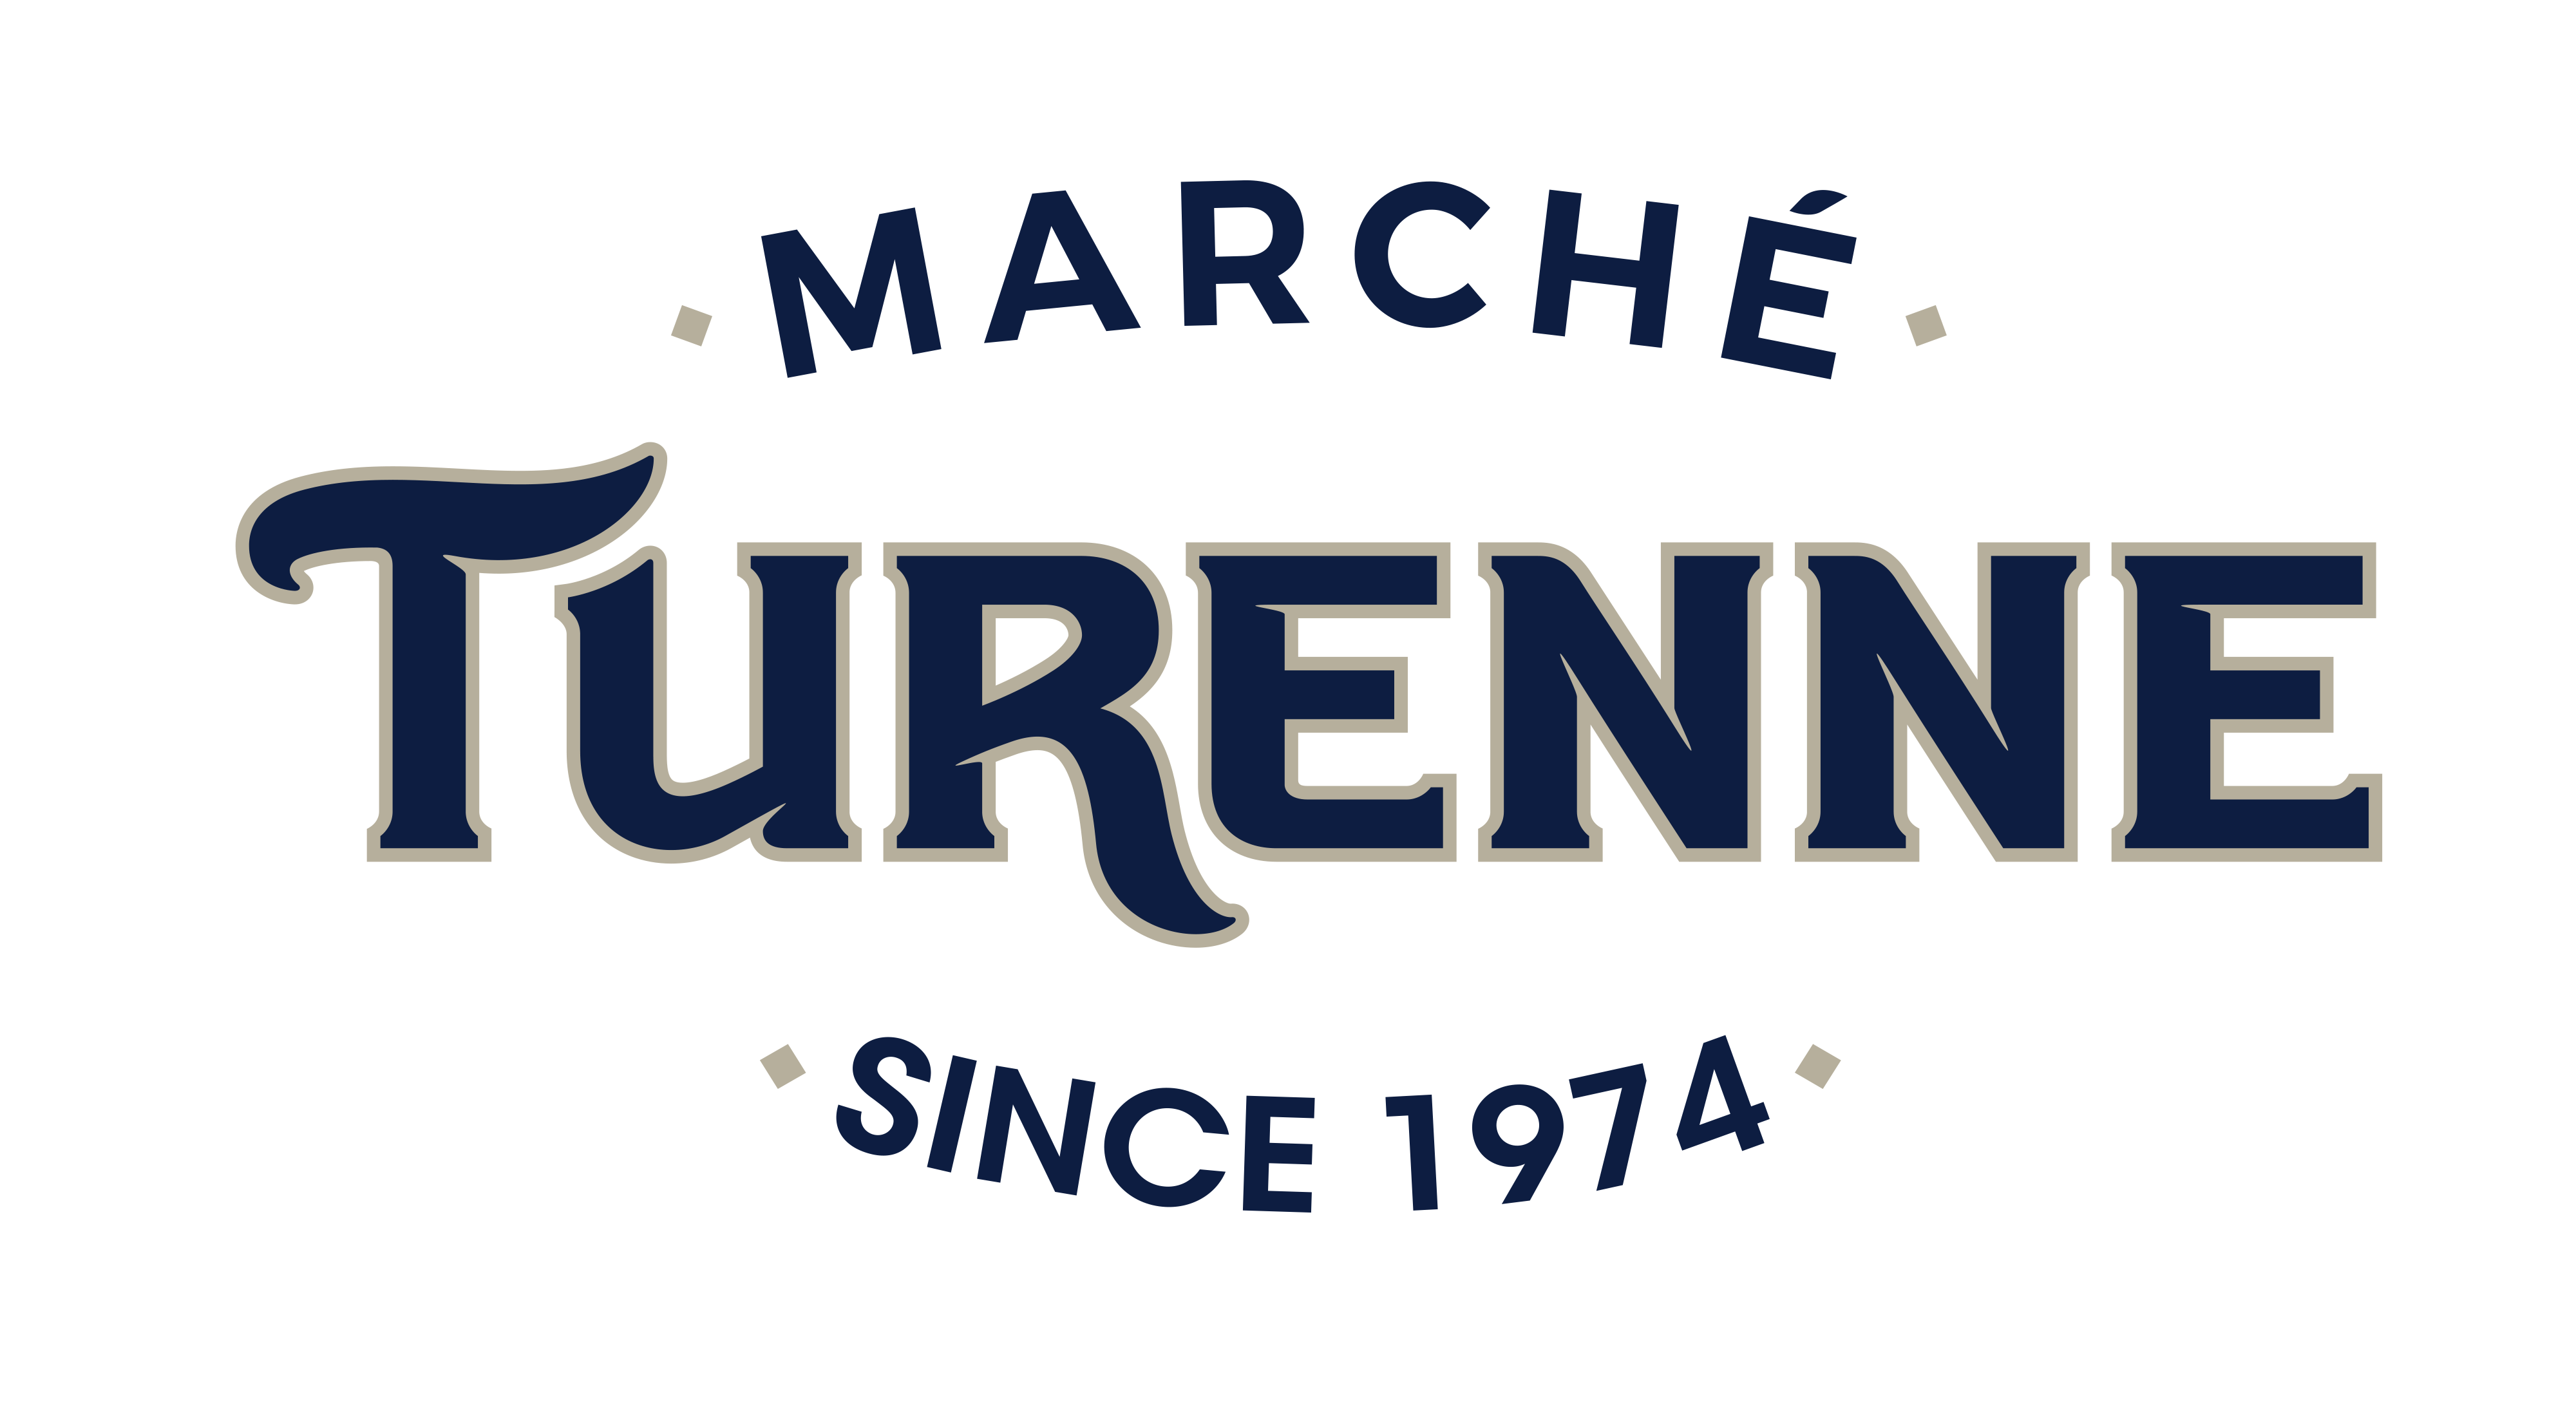 Marché Turenne